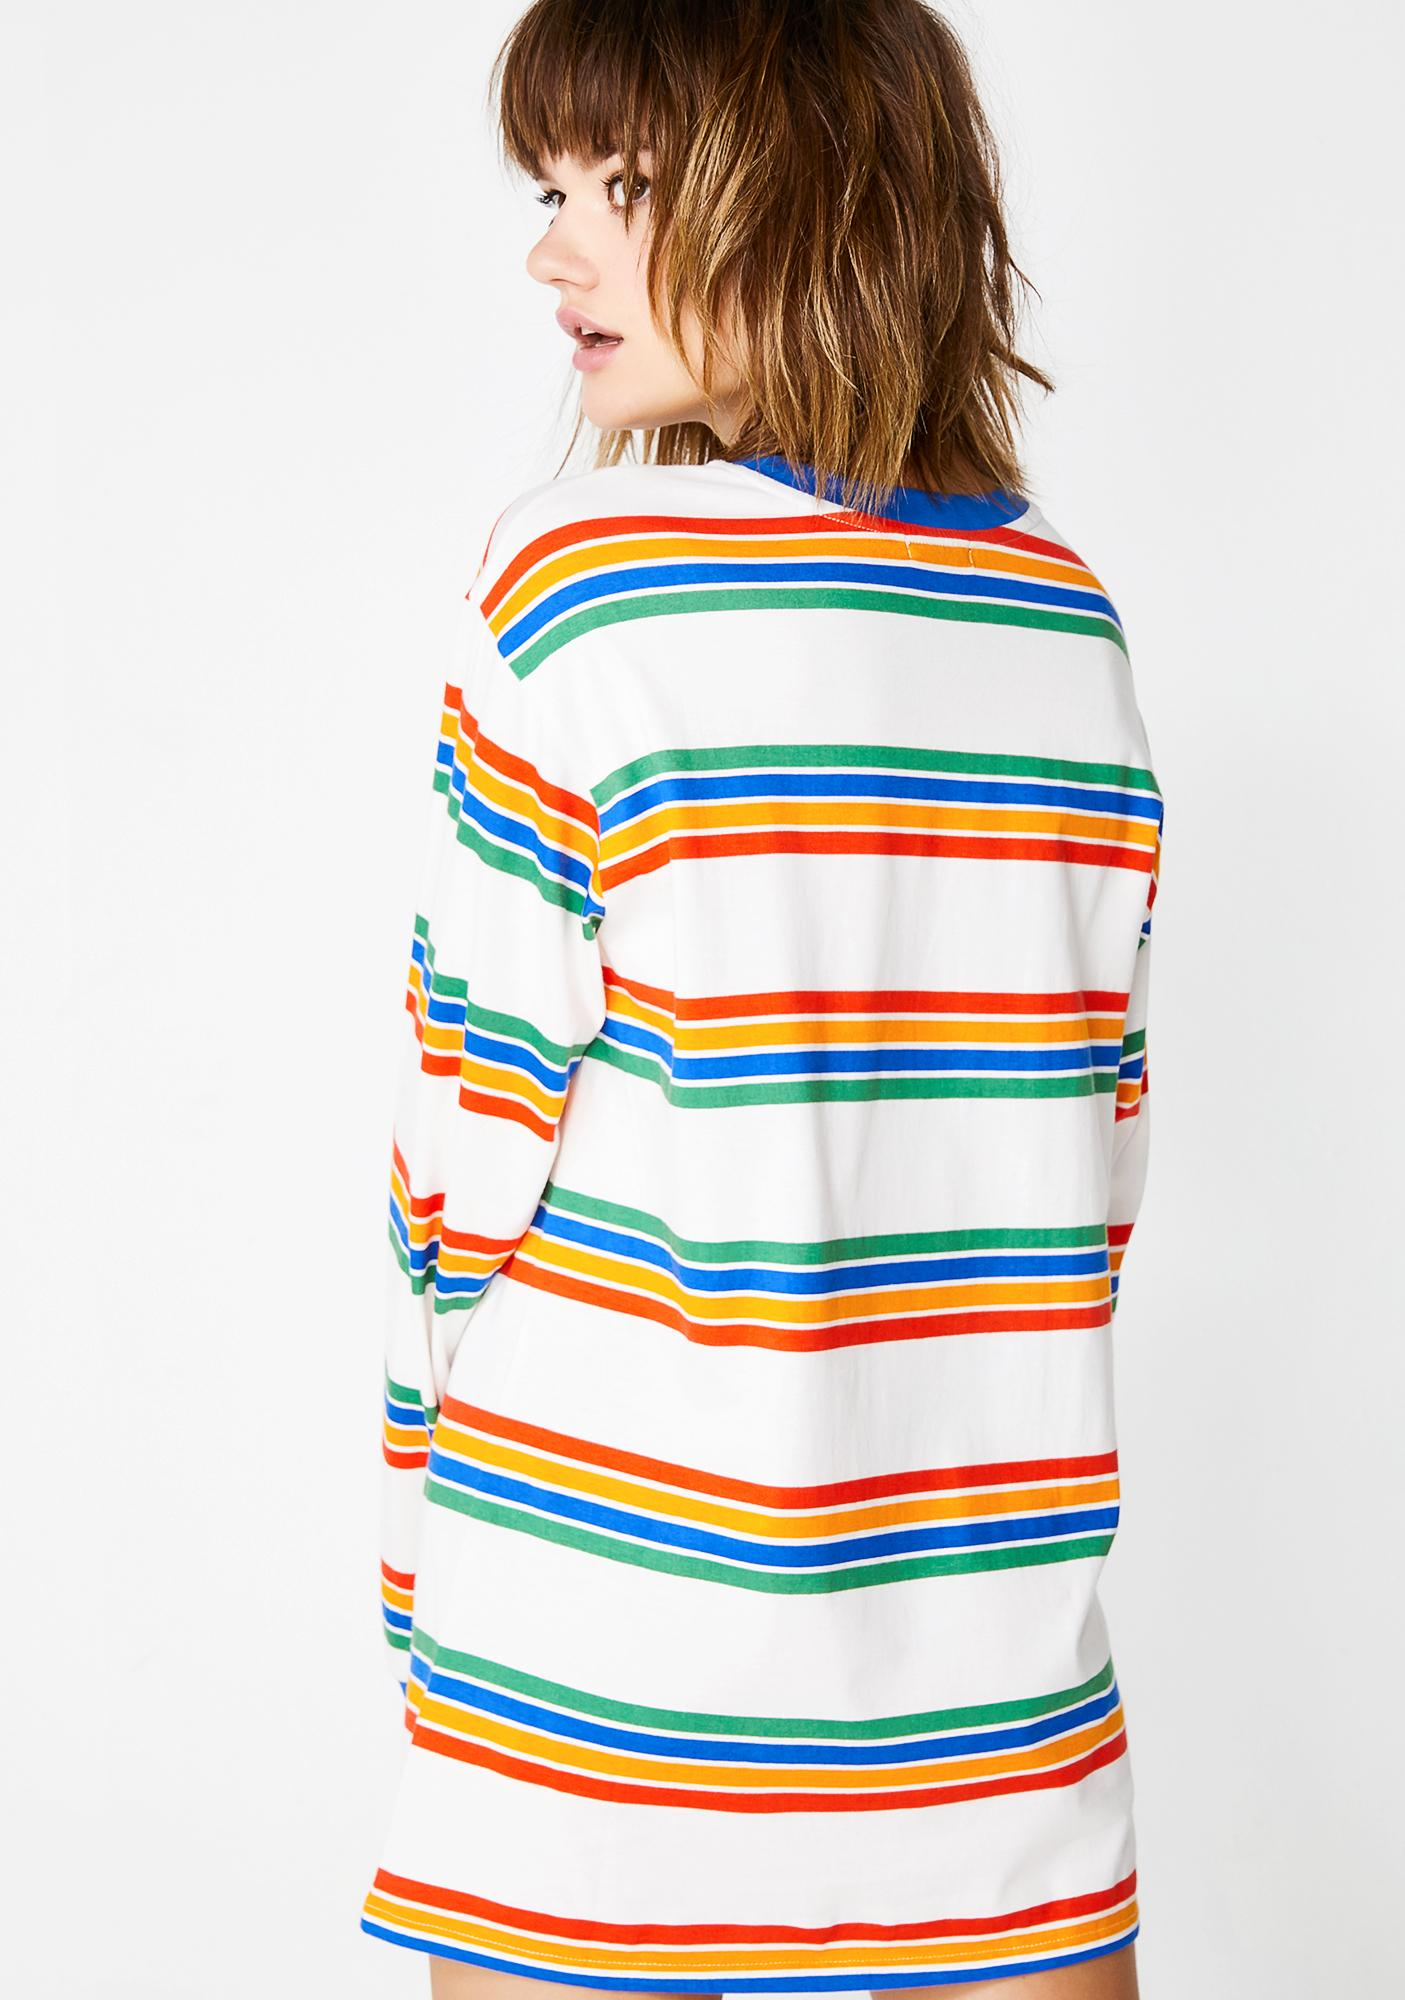 Current Mood Playin' Hooky Striped Top